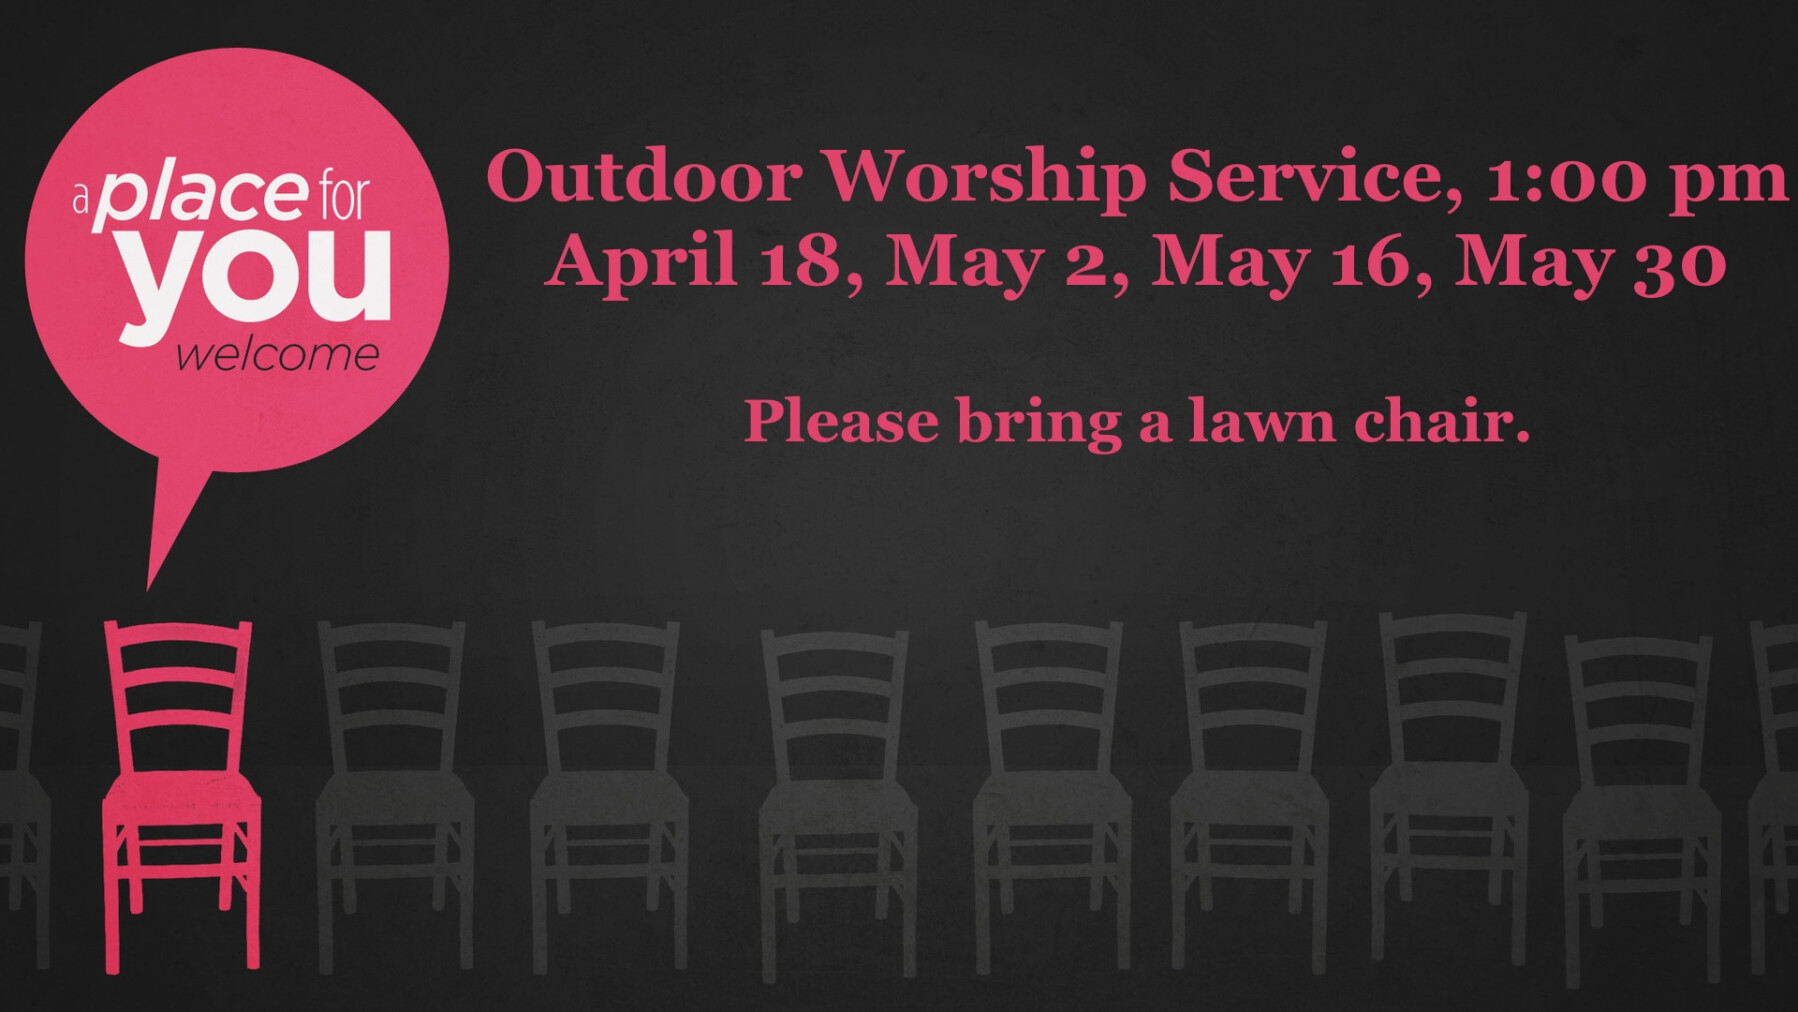 Outdoor Worship Services